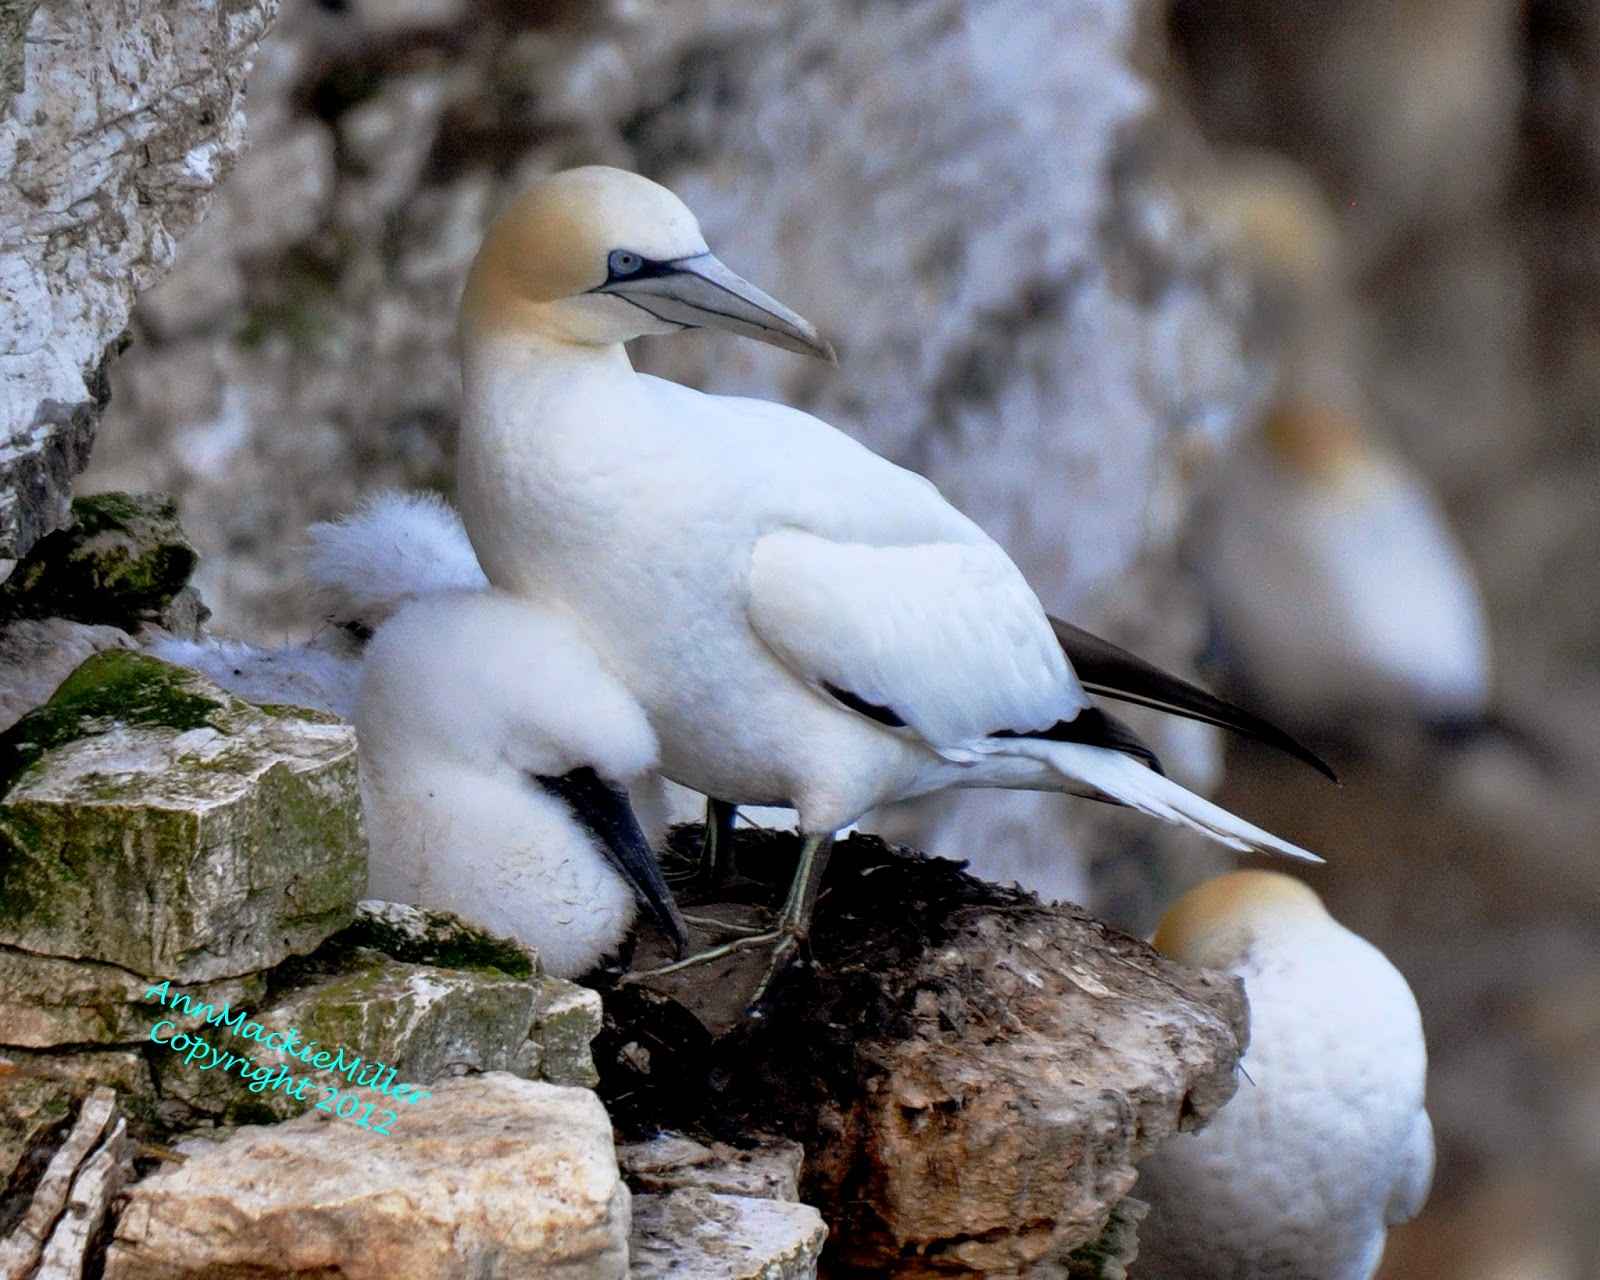 Adult Gannet and Gannet Chick on Cliff Nest